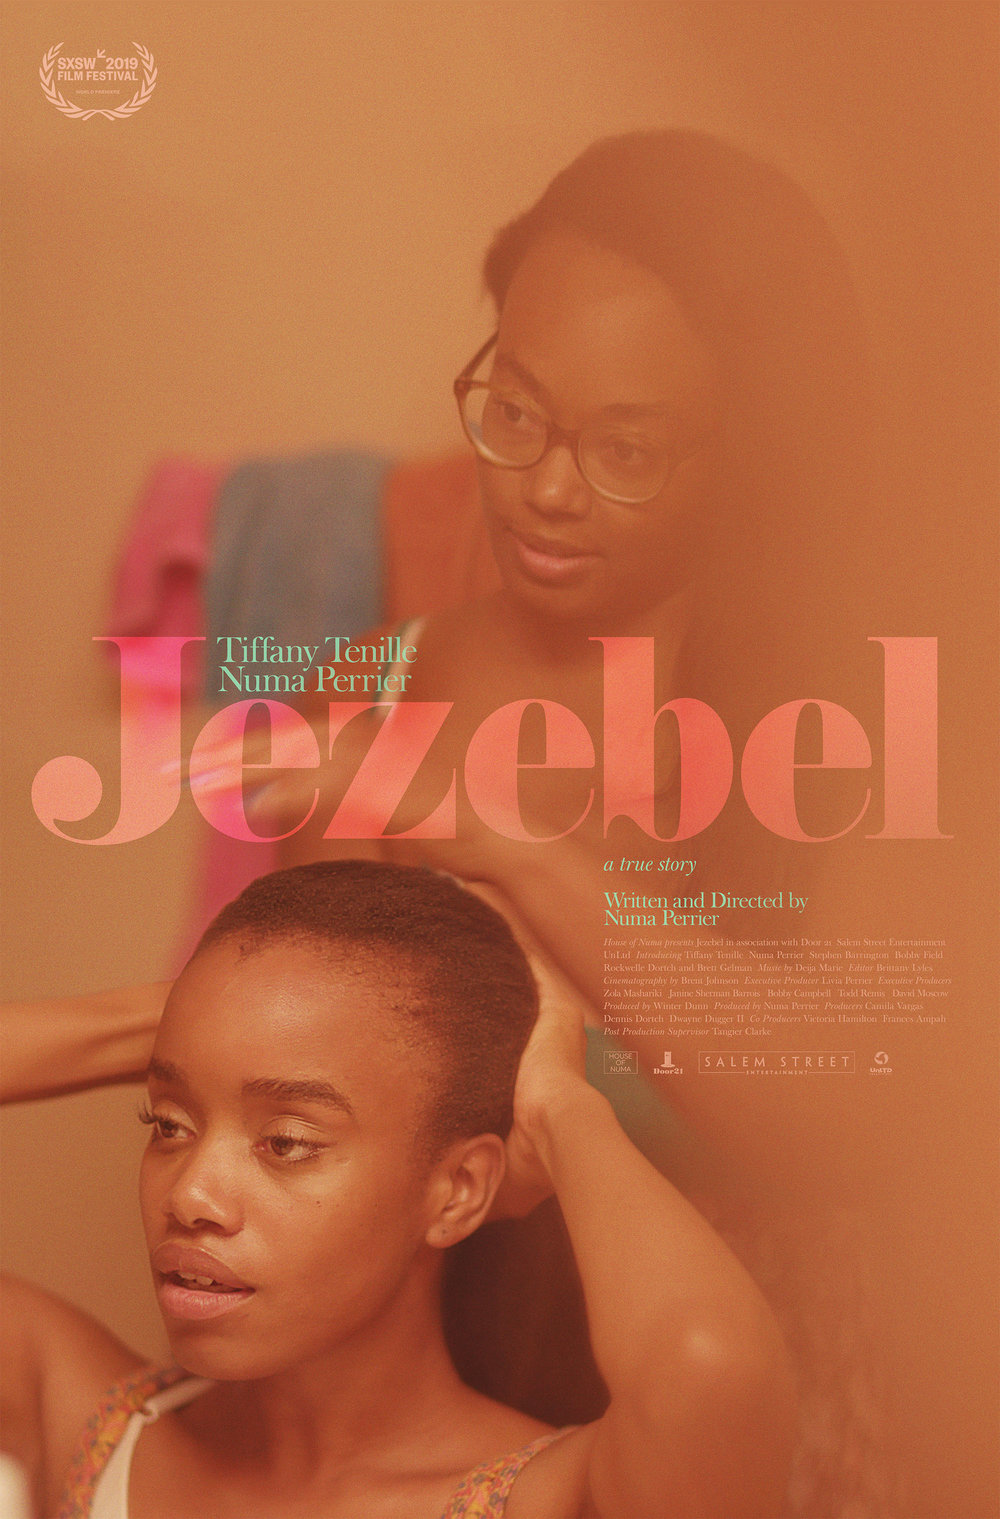 Jezebel_Poster_01_Final.jpg